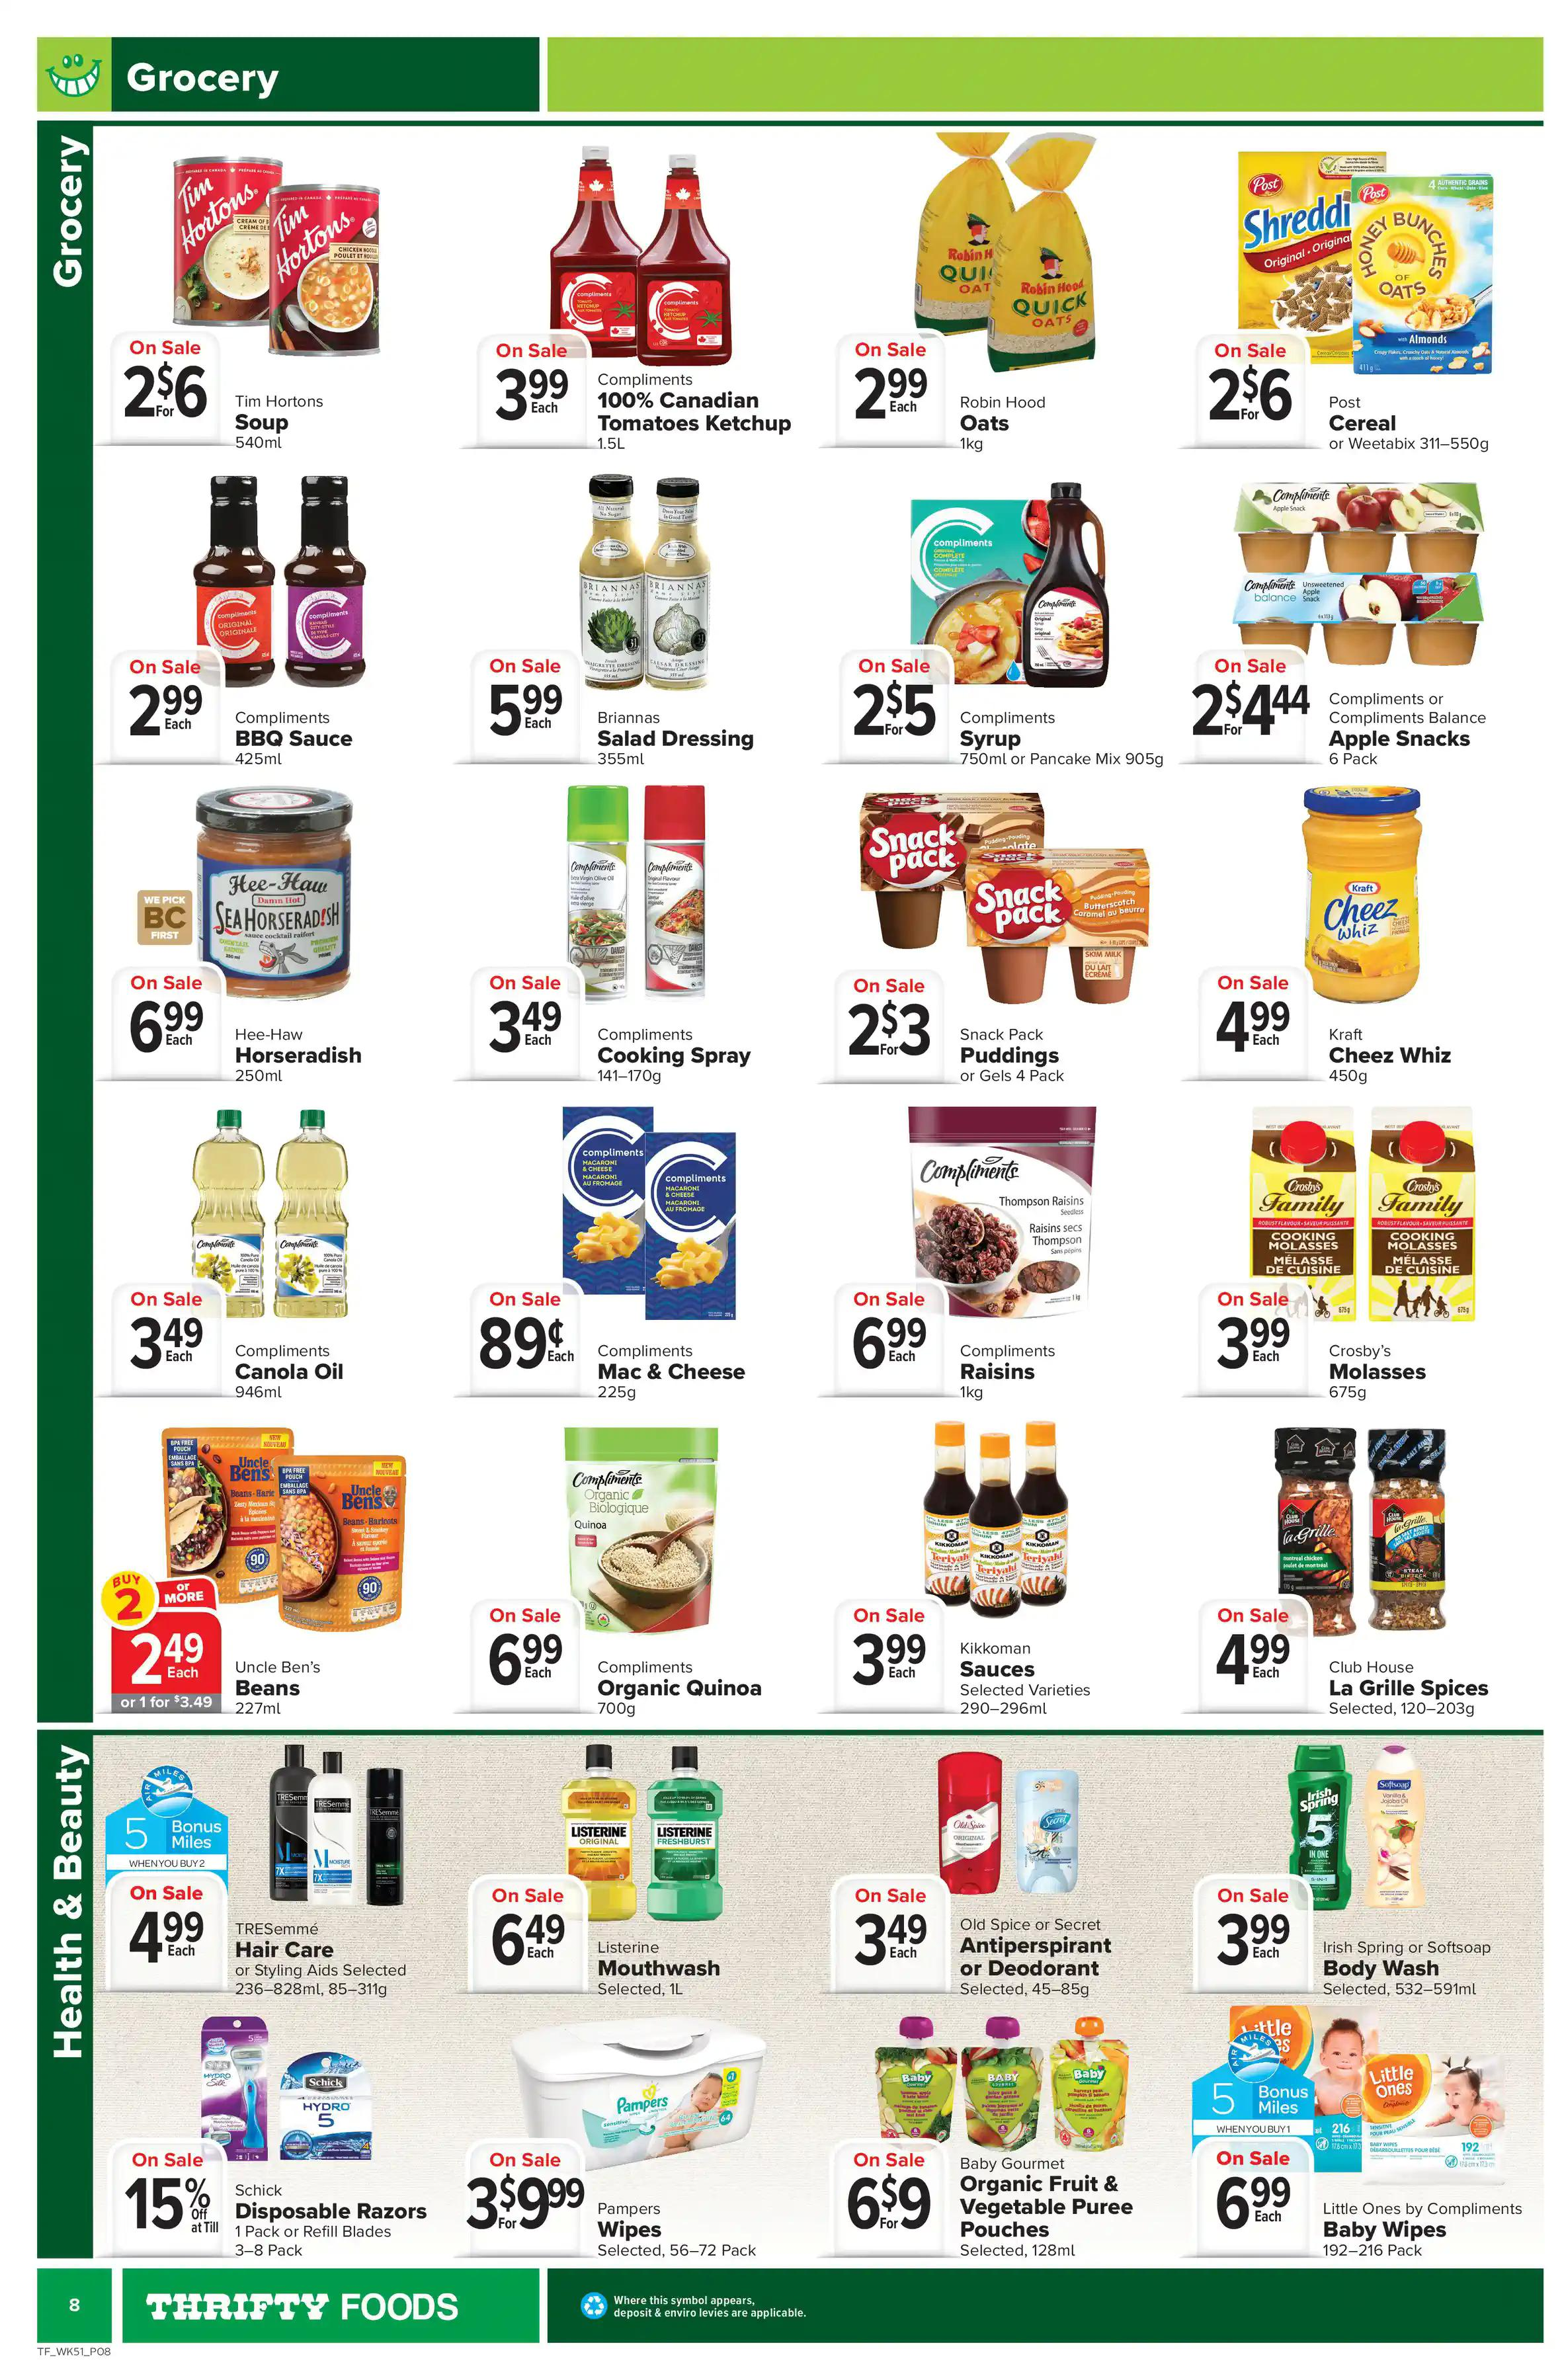 Thrifty Foods - Weekly Flyer Specials - Page 12